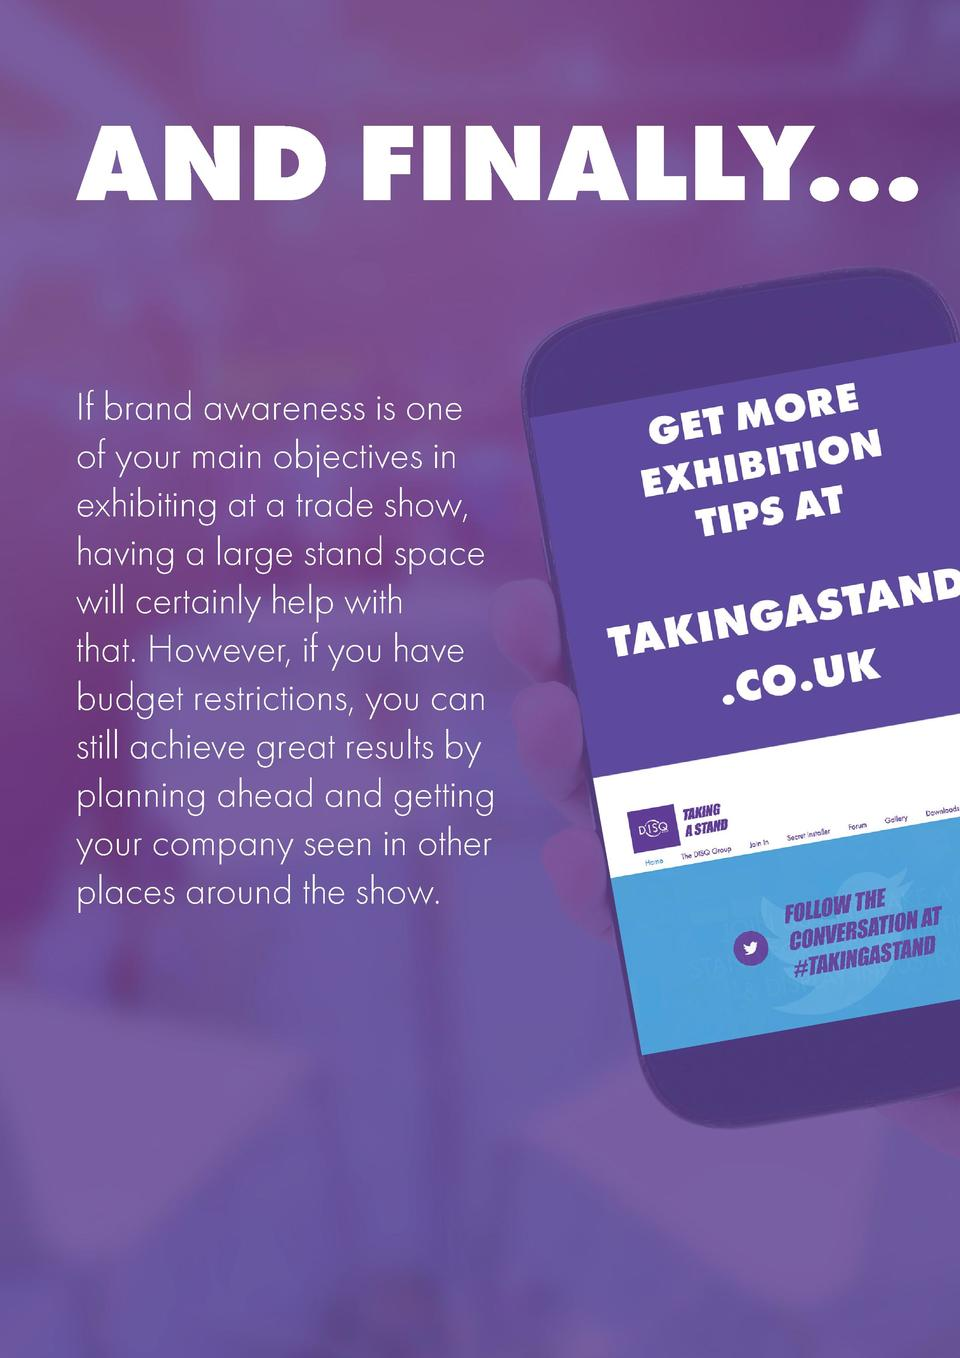 AND FINALLY... If brand awareness is one of your main objectives in exhibiting at a trade show, having a large stand space...